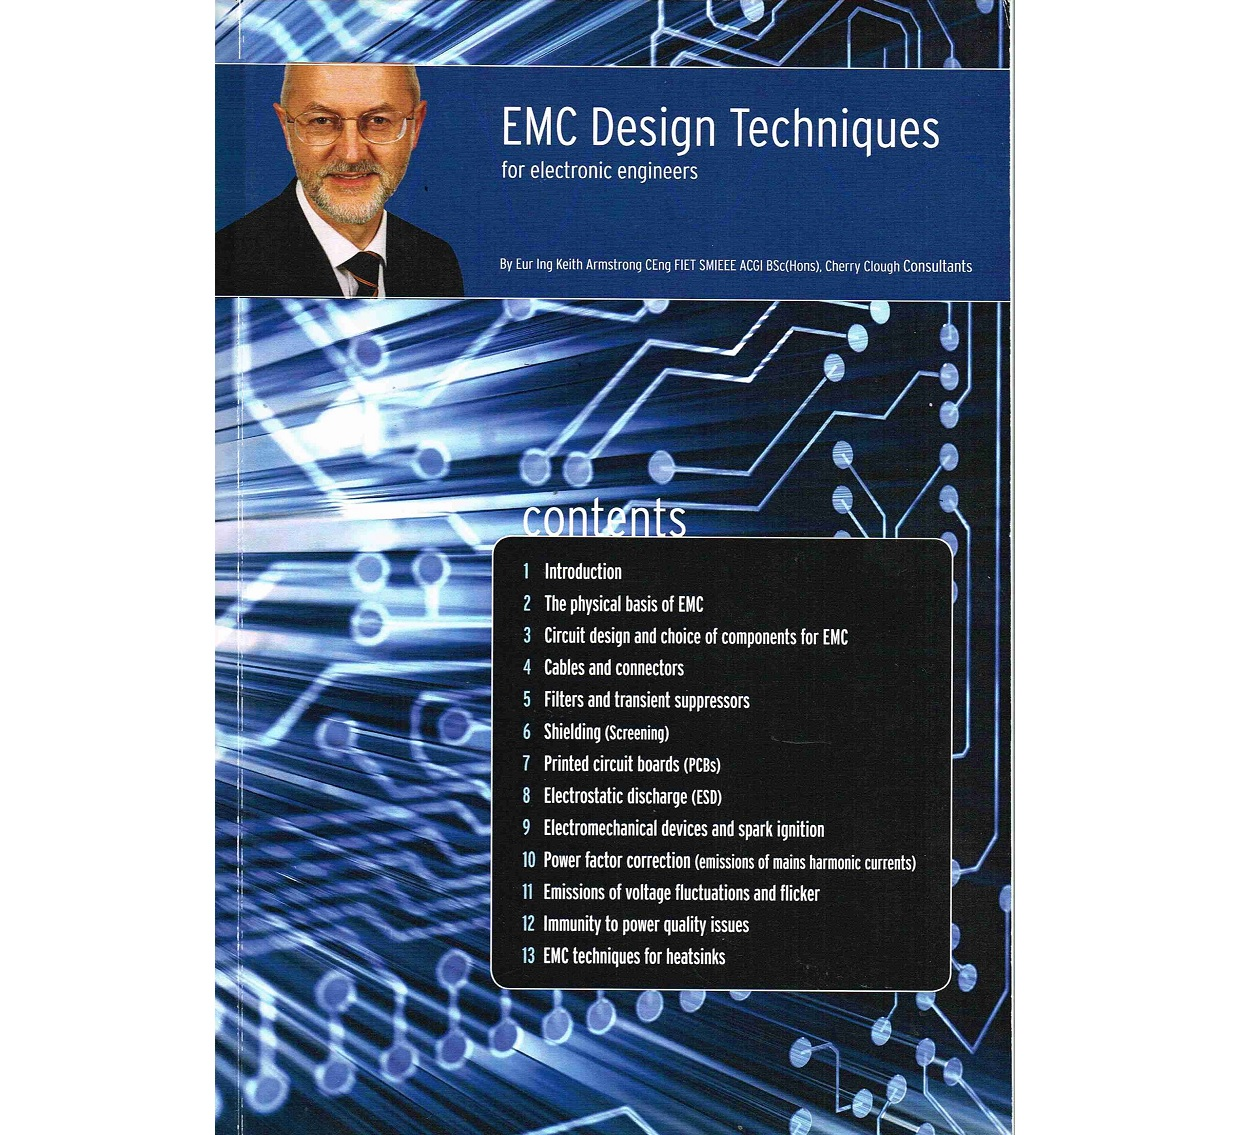 EMC Design Techniques for Electronic Engineers - Keith Armstrong